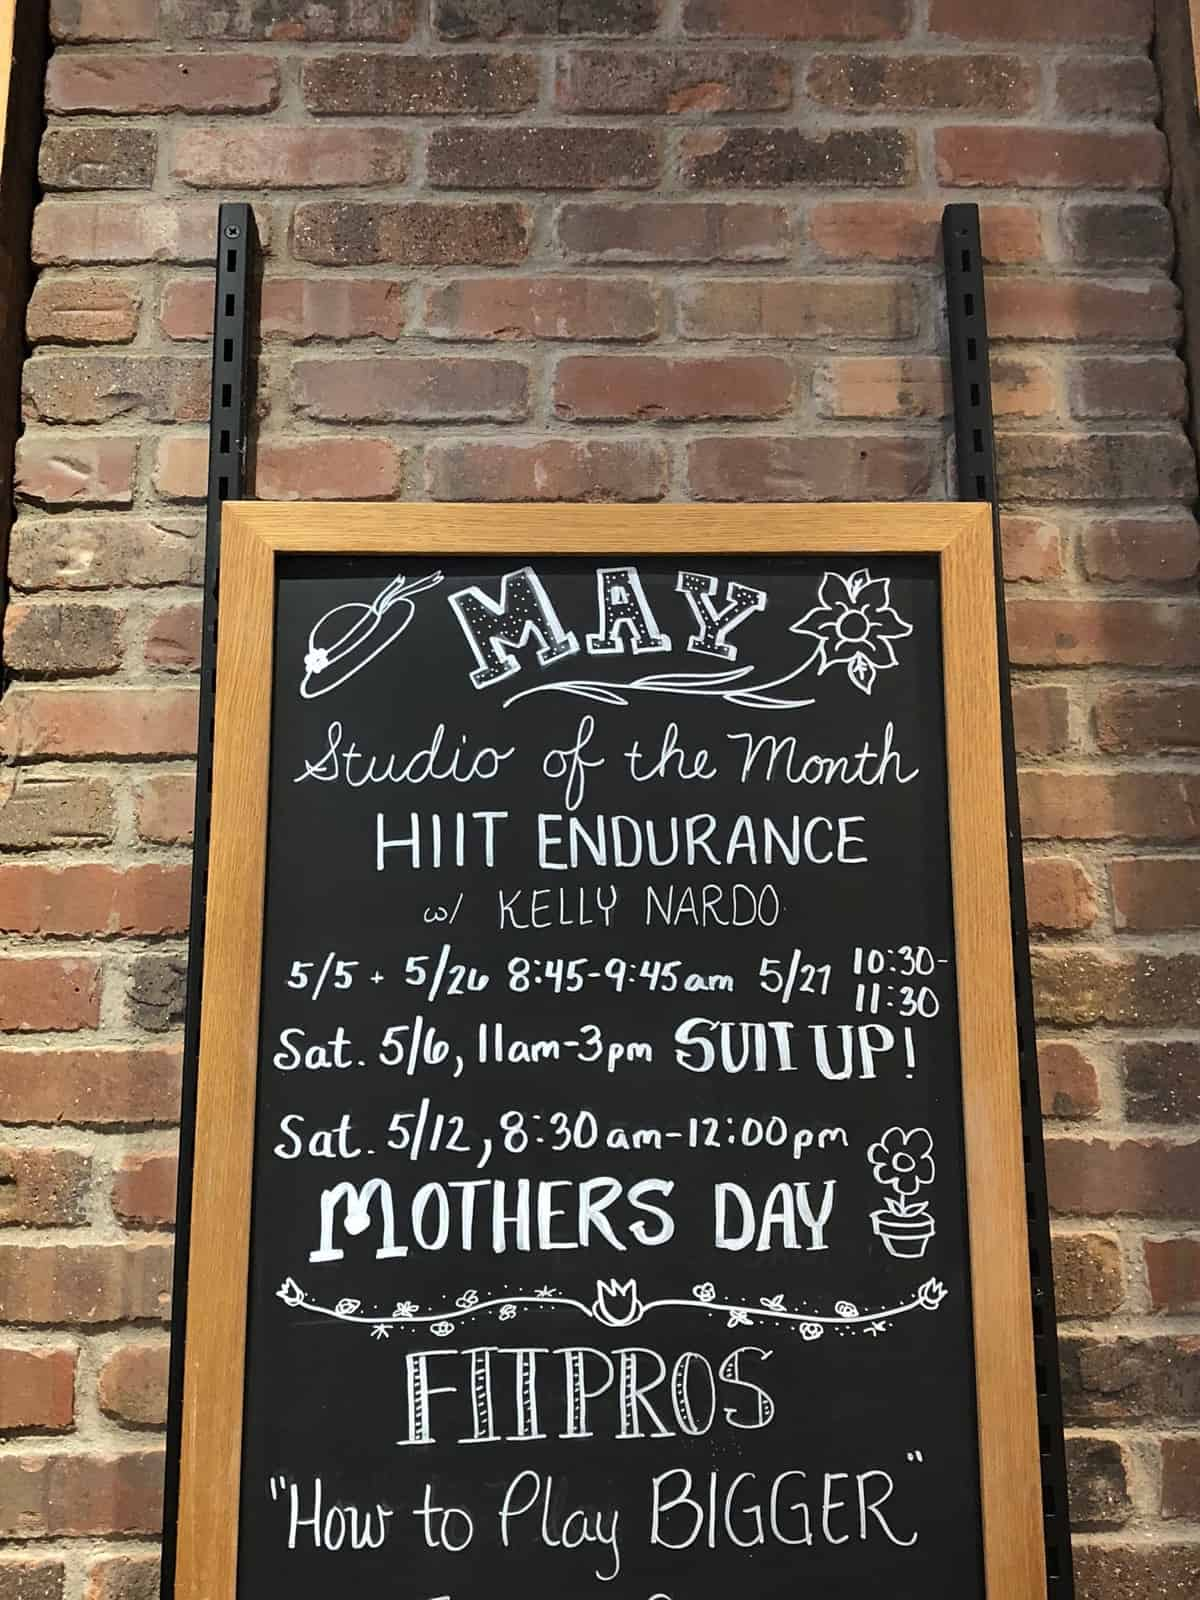 Sign of event in May at Athleta